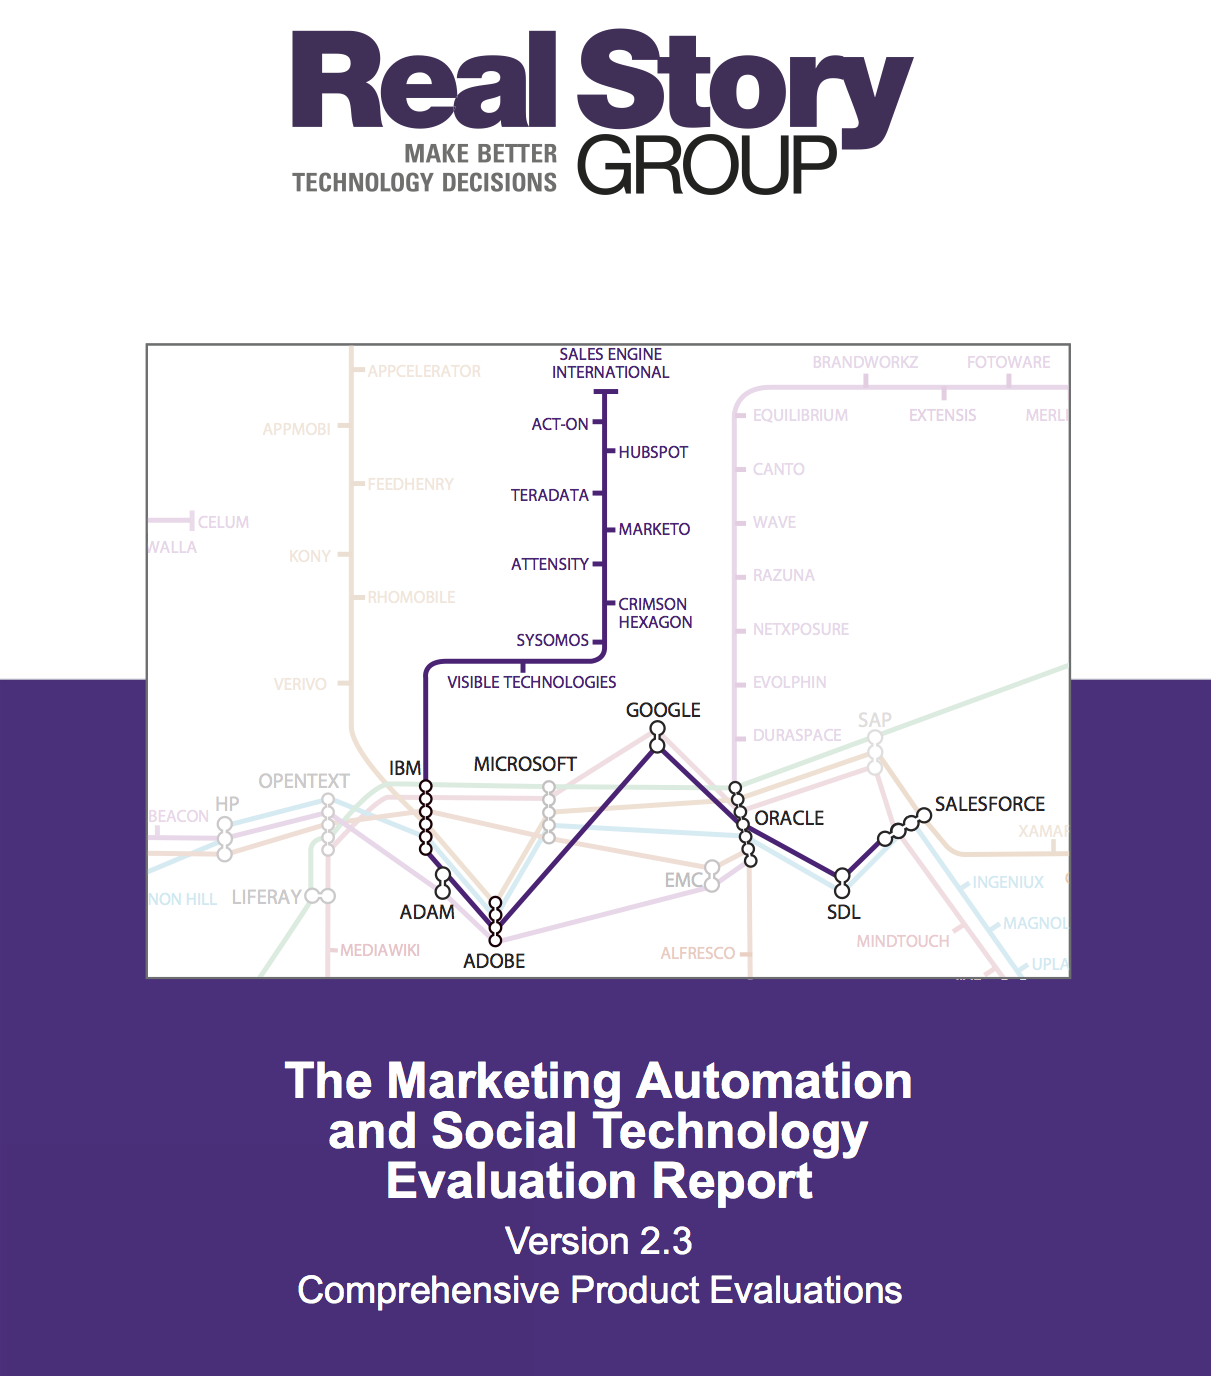 RSG Marketing Automation and Social Technology Report Cover page